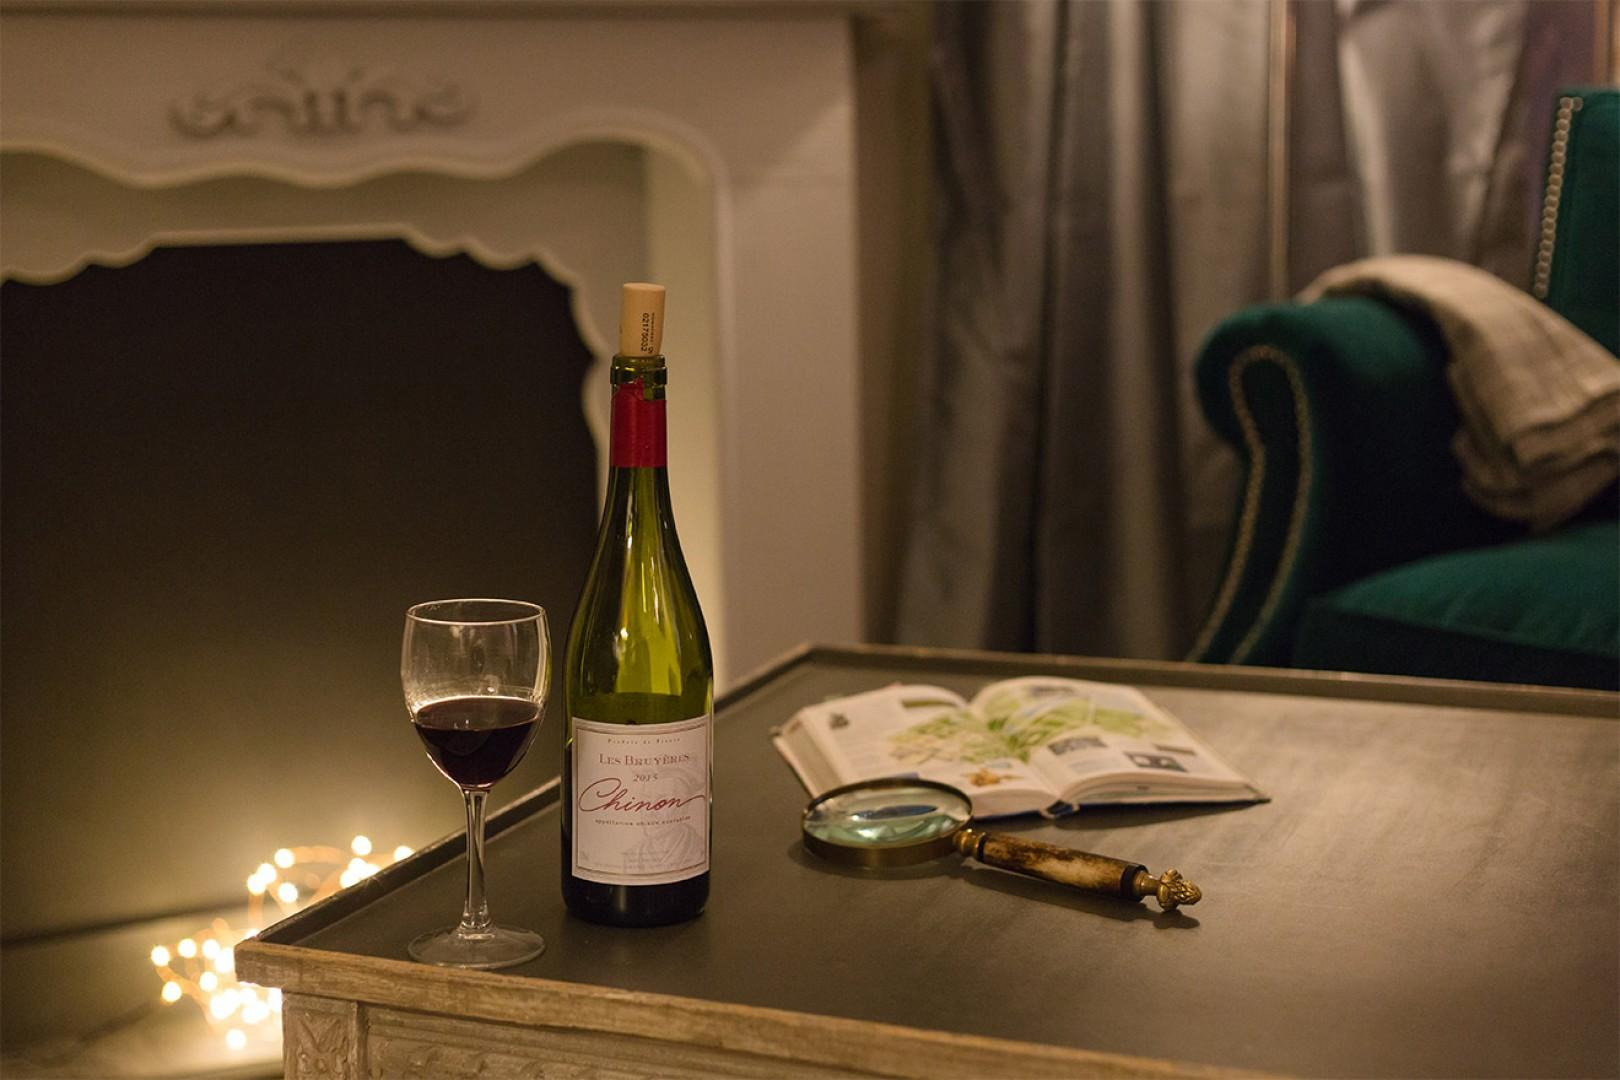 Enjoy a romantic night in at the cozy apartment.